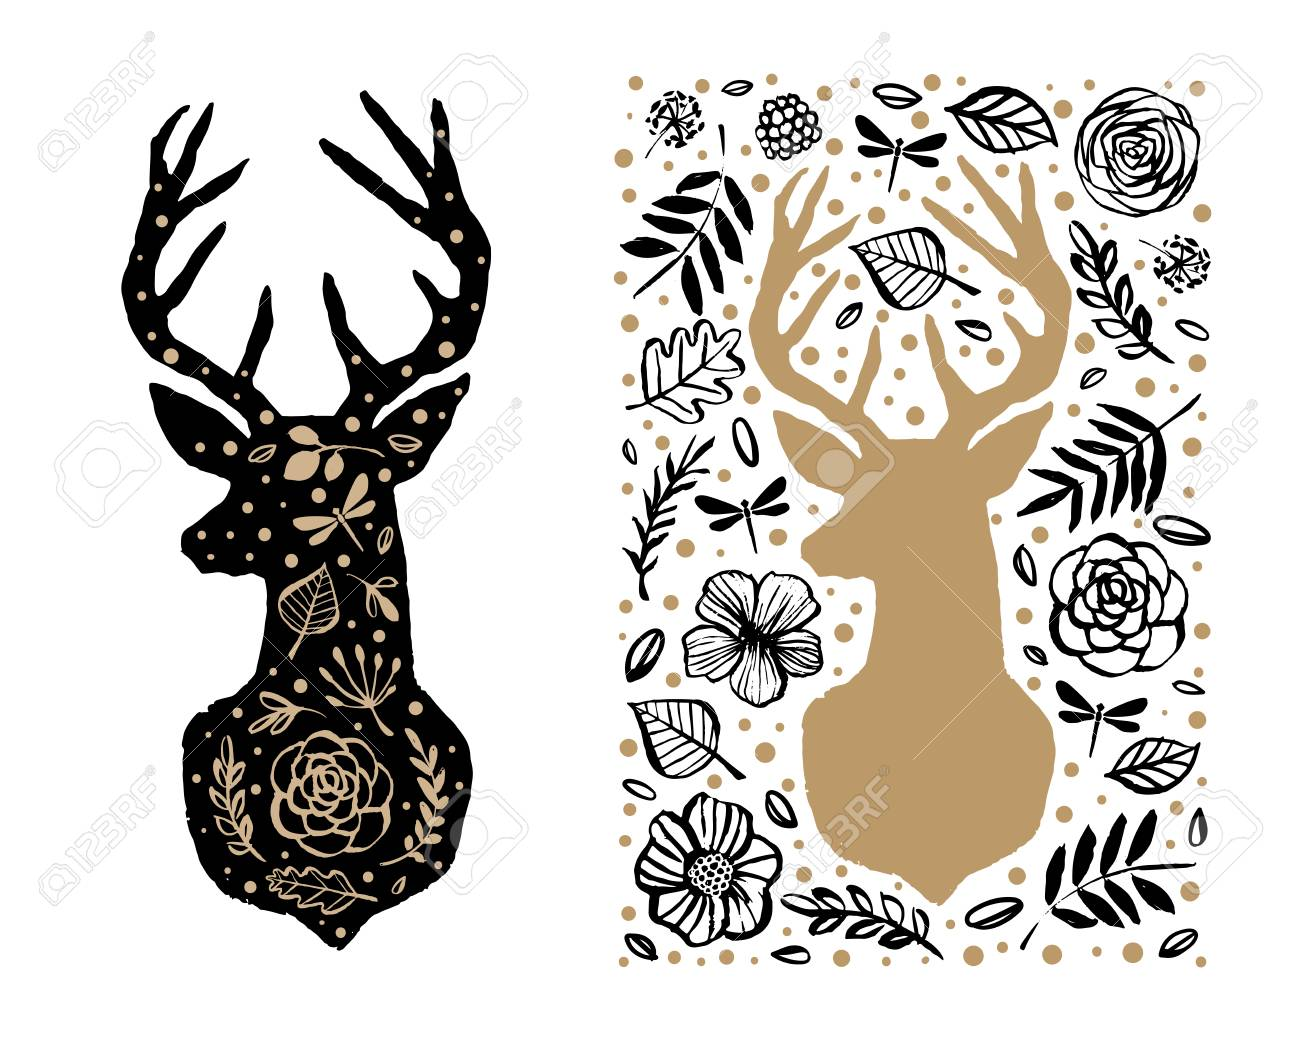 O Deer Silhouette of deer in the flower pattern. Hand drawn design elements. Black  and white